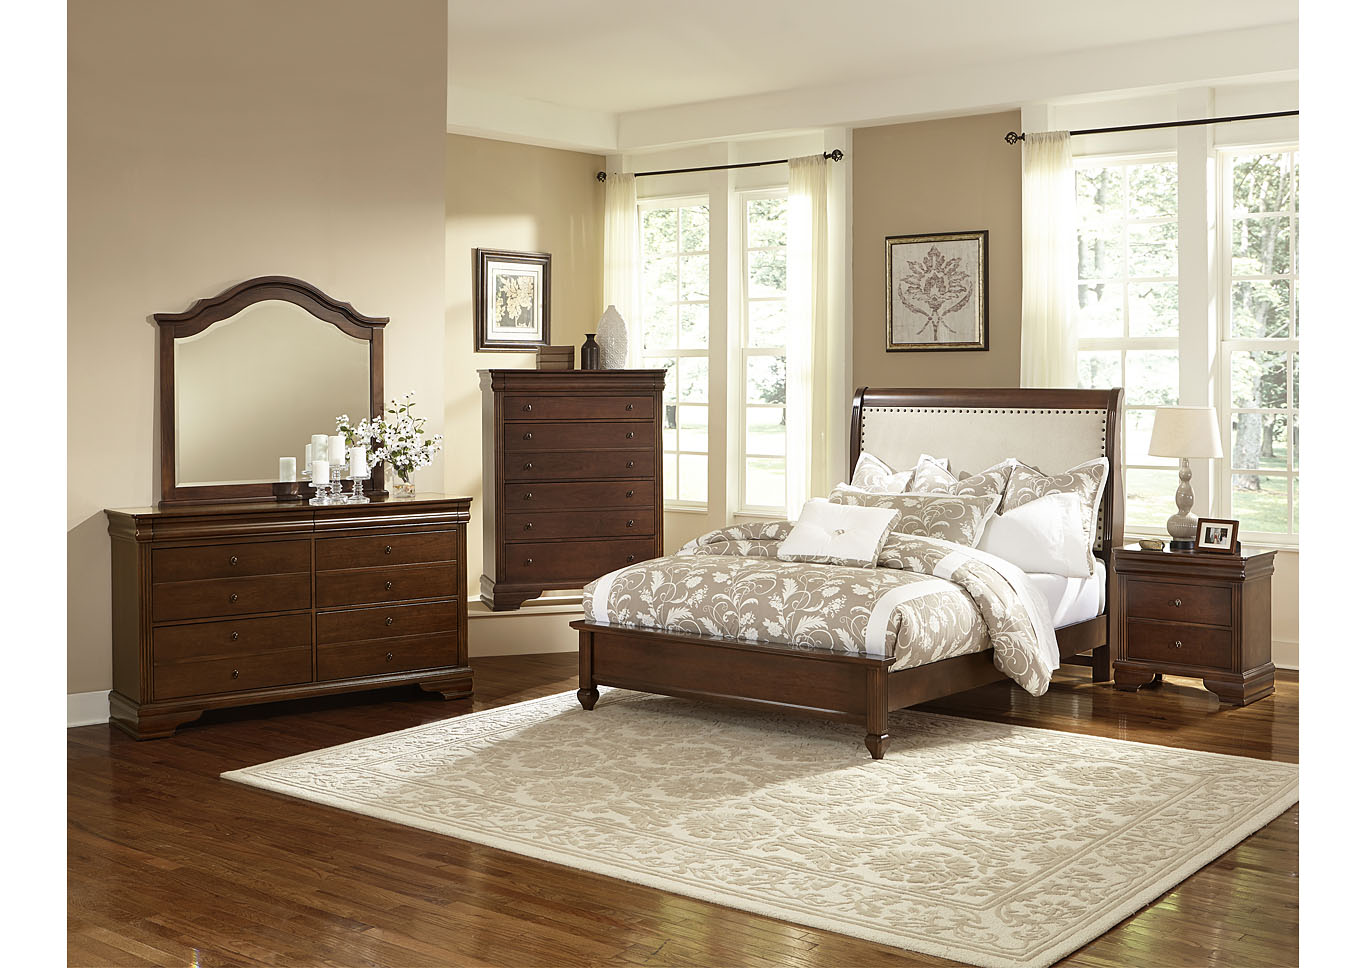 French Market French Cherry King Sleigh Bed w/ Dresser, Mirror and Nightstand,Vaughan-Bassett